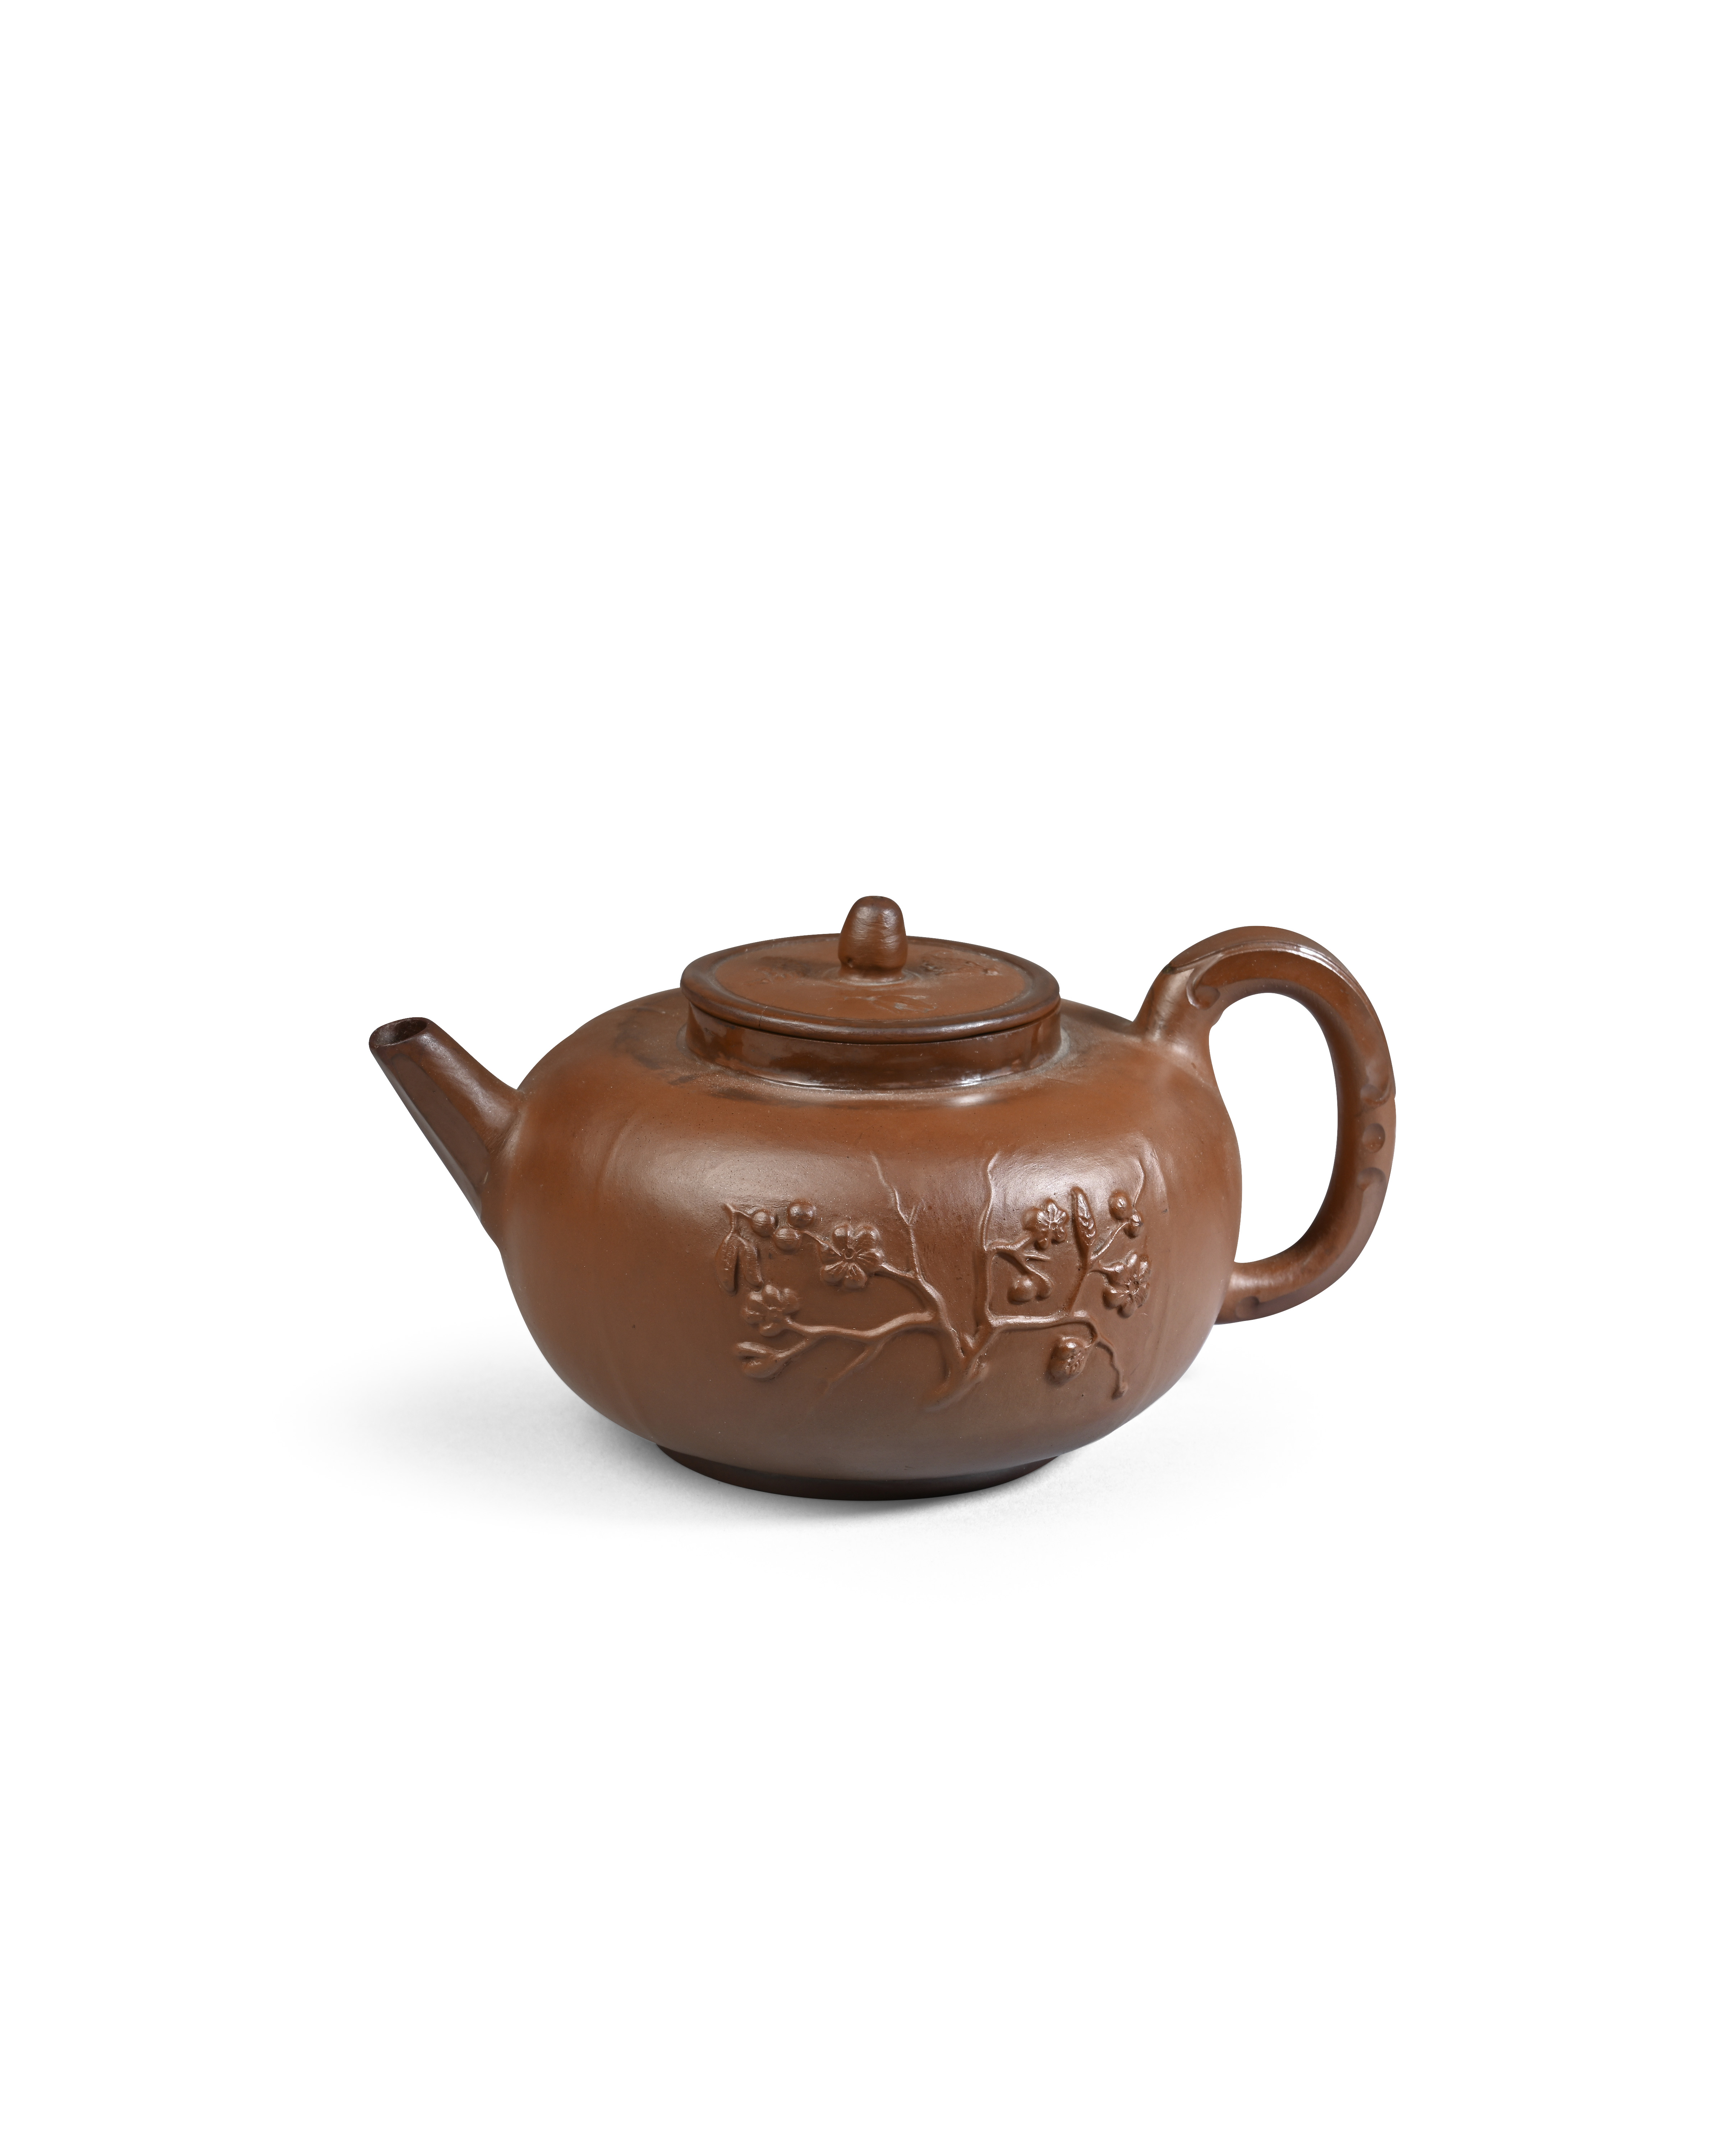 A rare Meissen Böttger stoneware teapot and cover c.1710-13, the flattened globular form sprigged